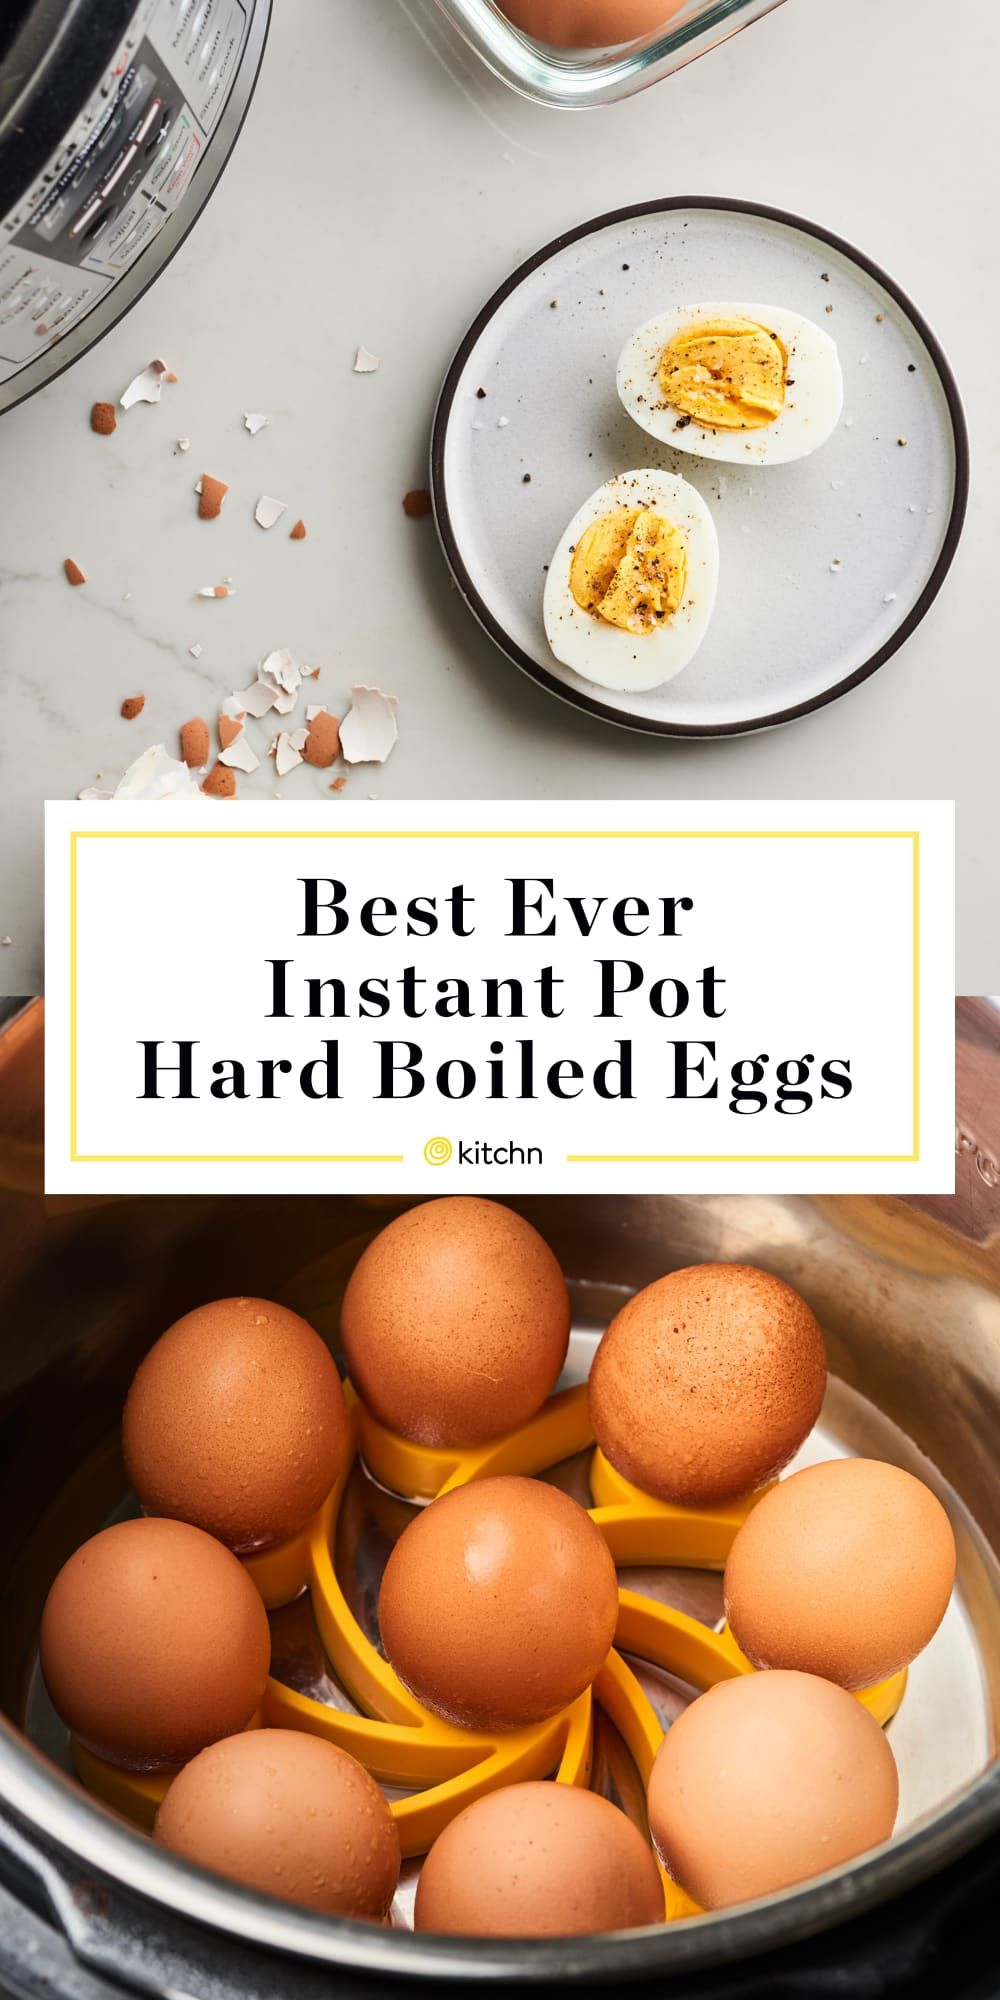 Memorize 5:5:5 For Perfect Instant Pot Eggs Every Time